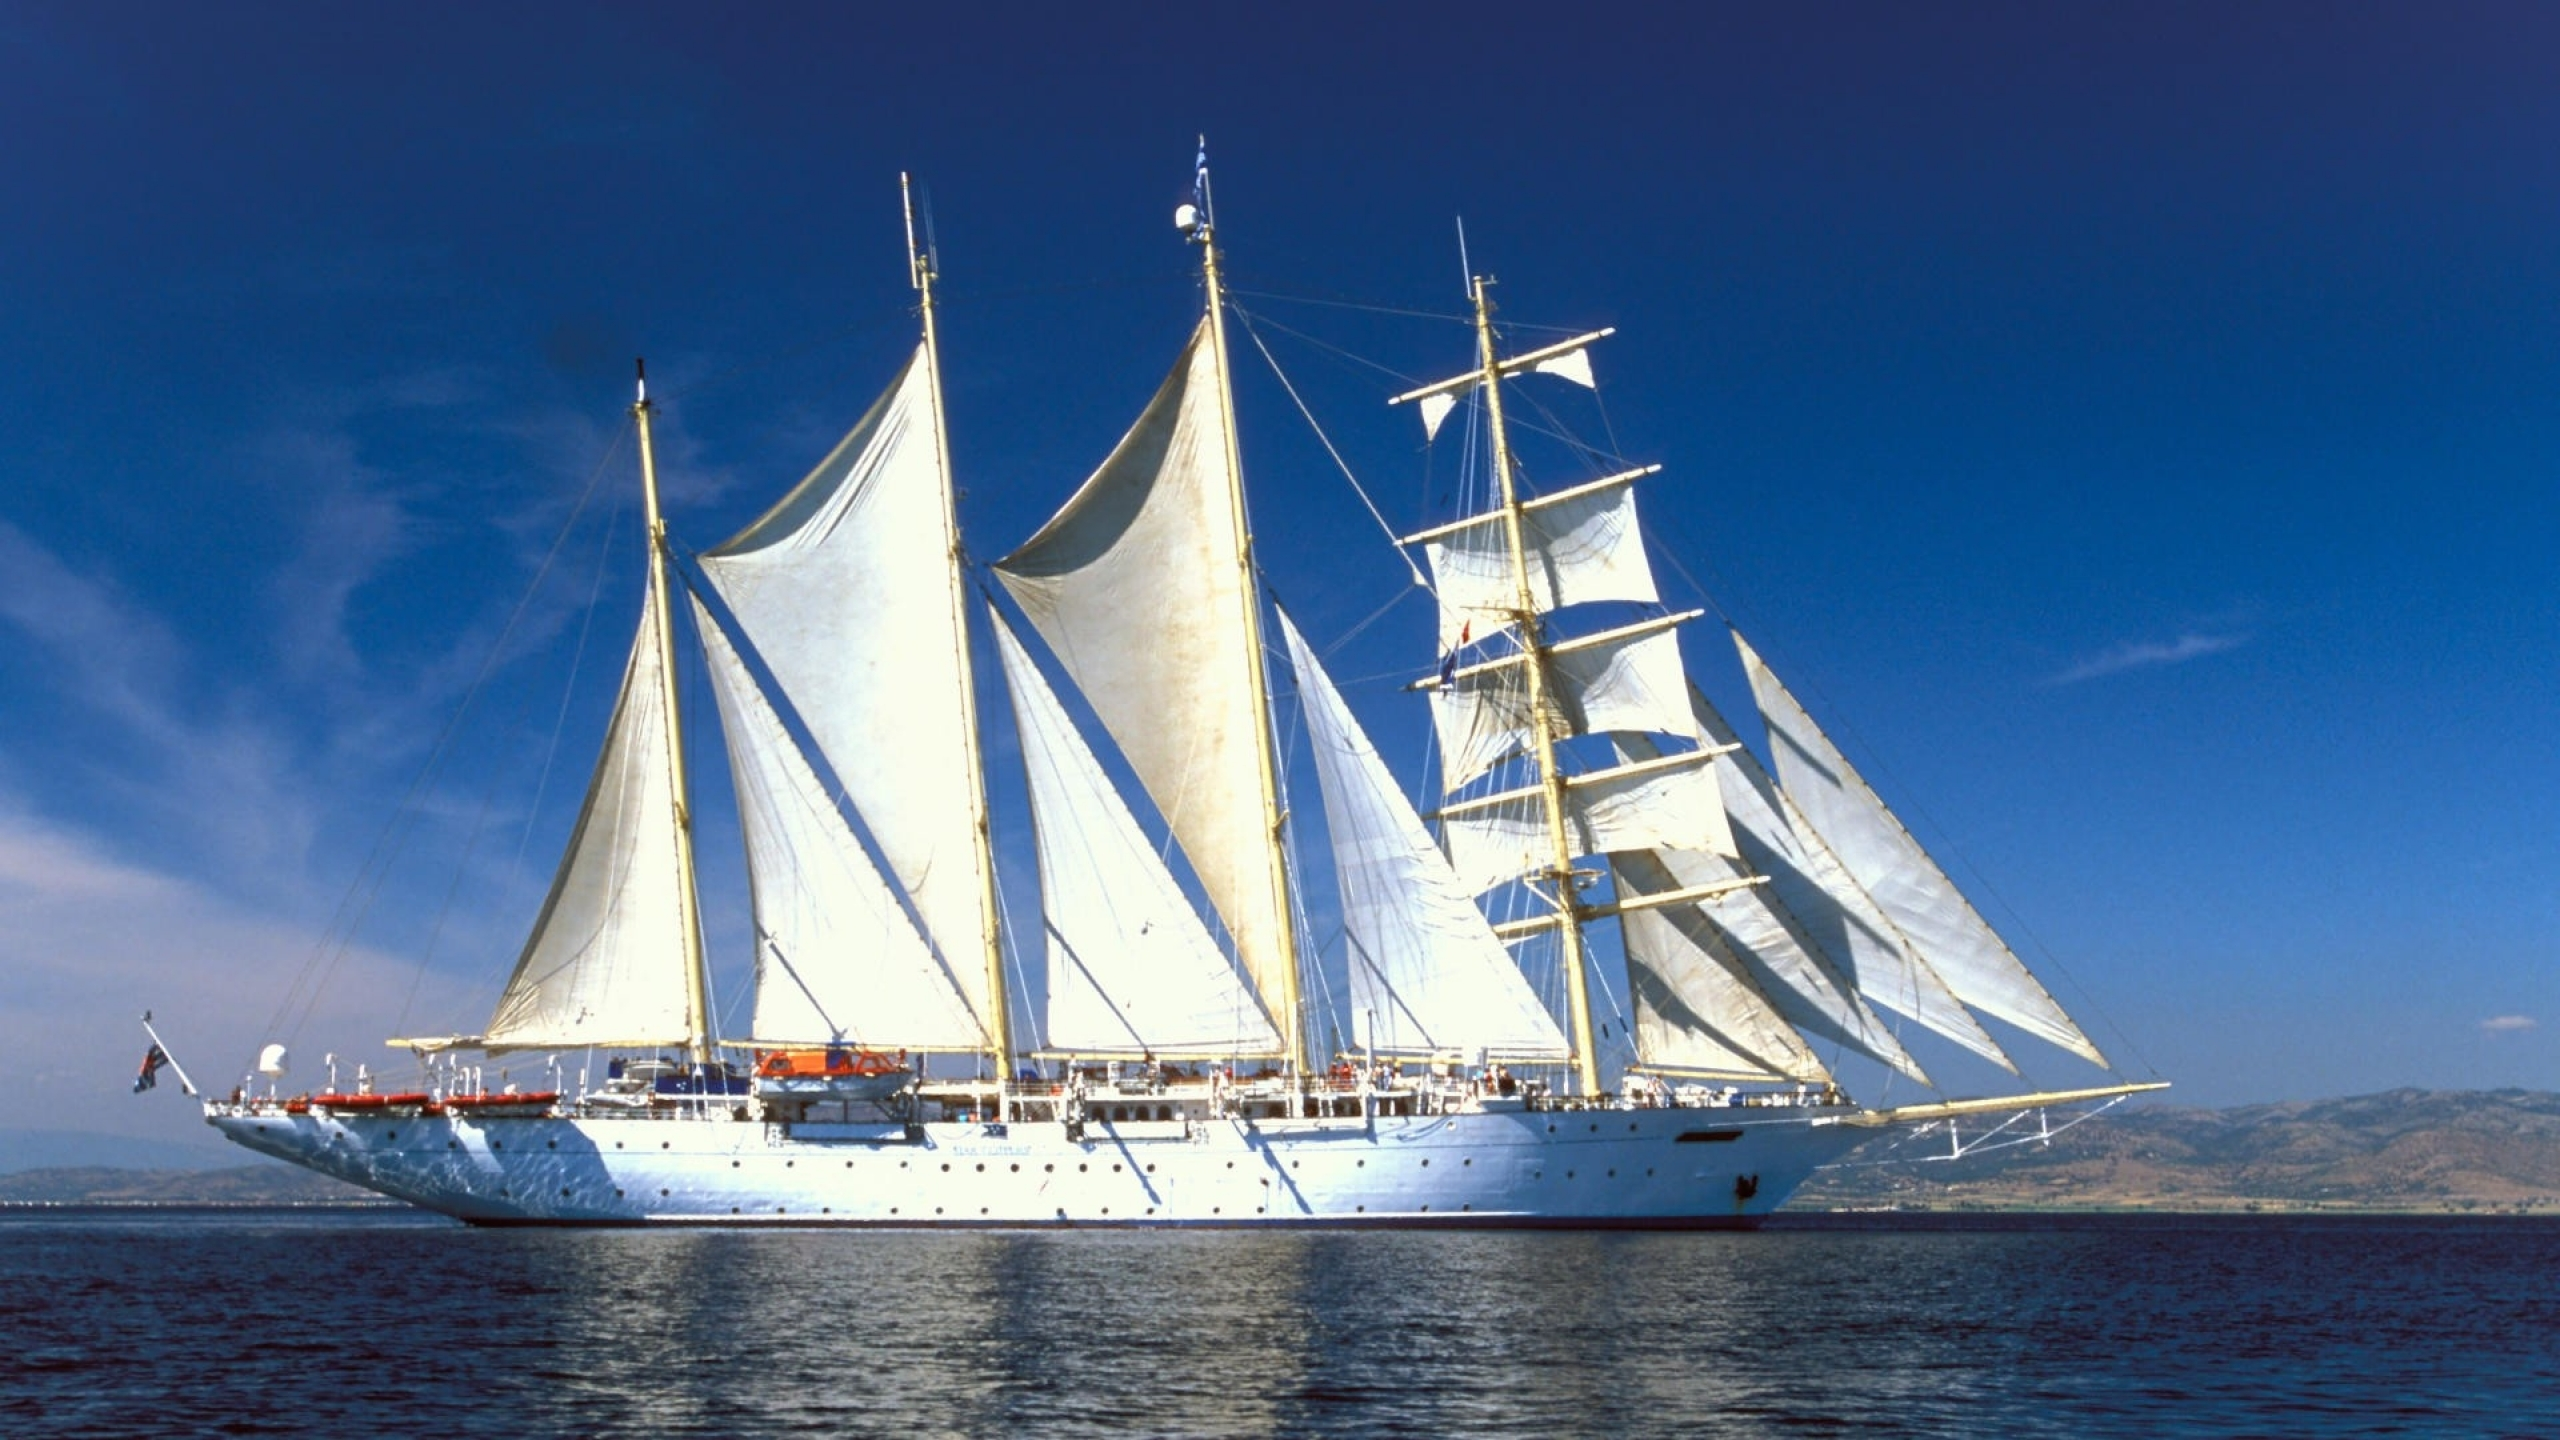 Sailing Ship Full HD Wallpaper and Background   2560x1440 ...